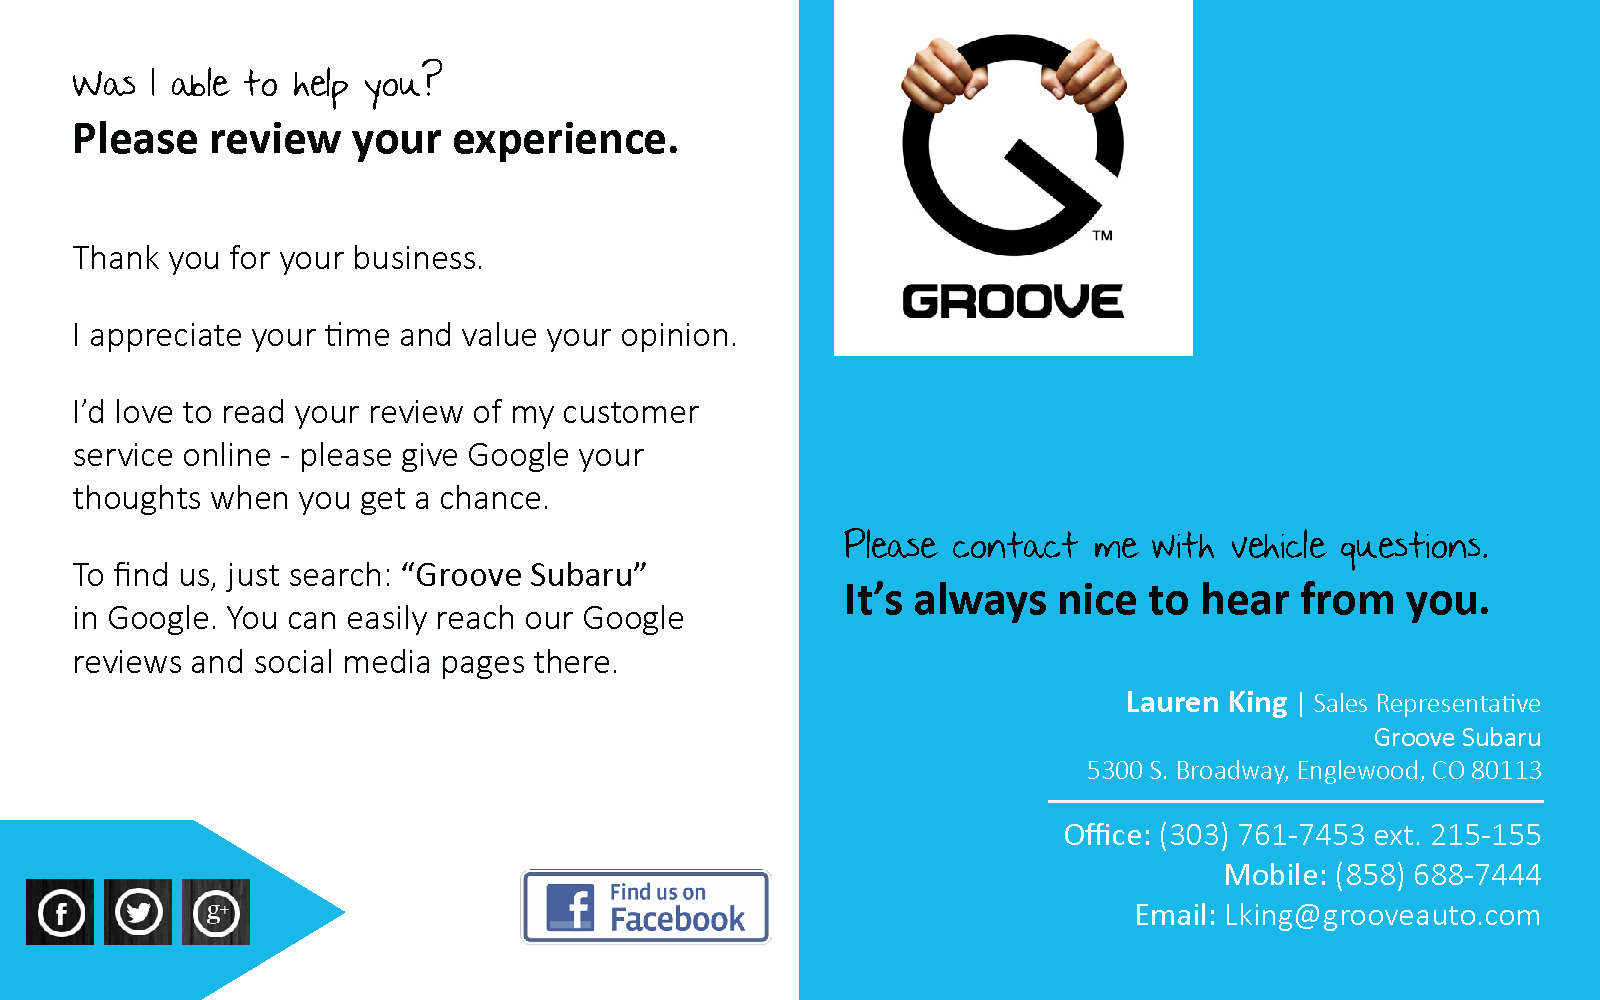 Test Drive Rating Card_Groove Subaru_8x5_FINAL_Page_1